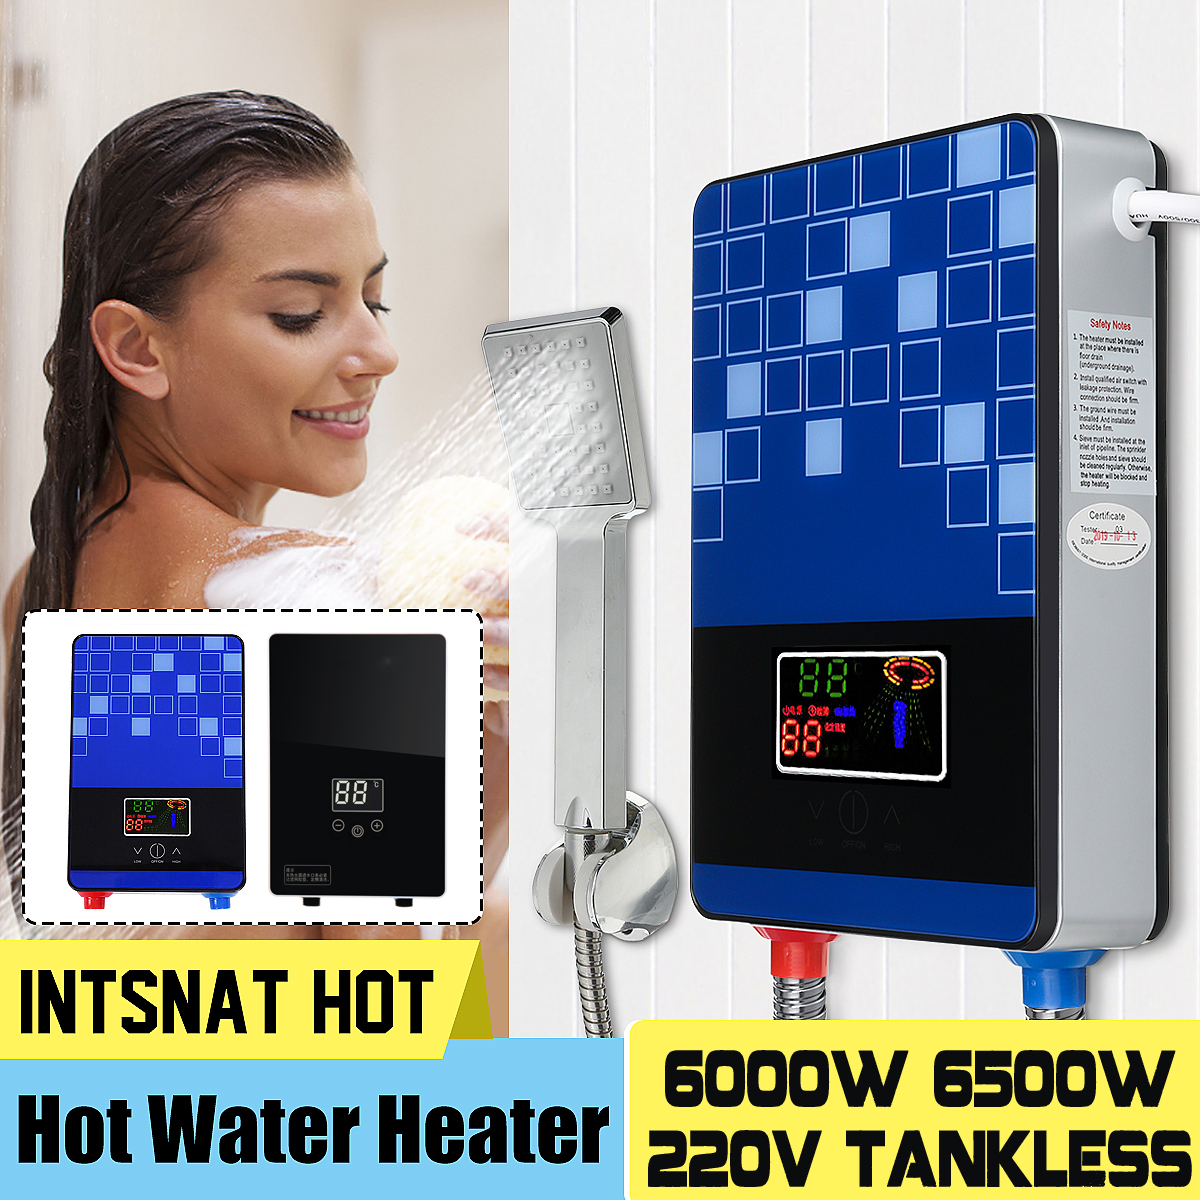 Warmtoo 6000W/6500W 220V IPX4 LED Display Electric Instant Water Heater Tankless Instantaneous Water Heating Fast Heat W/ Pipe